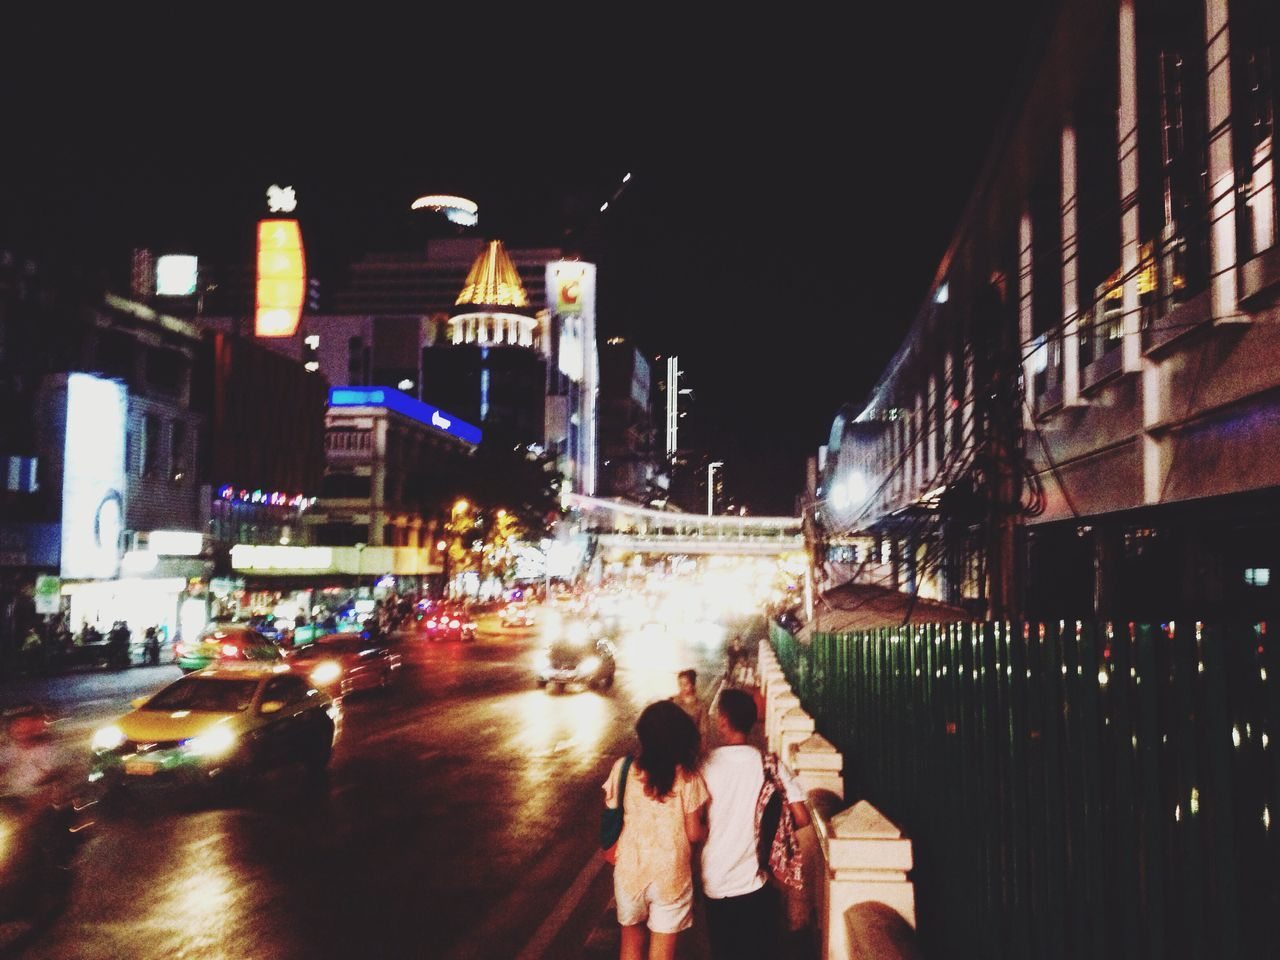 night, building exterior, architecture, built structure, illuminated, city, togetherness, city life, real people, blurred motion, women, outdoors, lifestyles, men, cityscape, sky, people